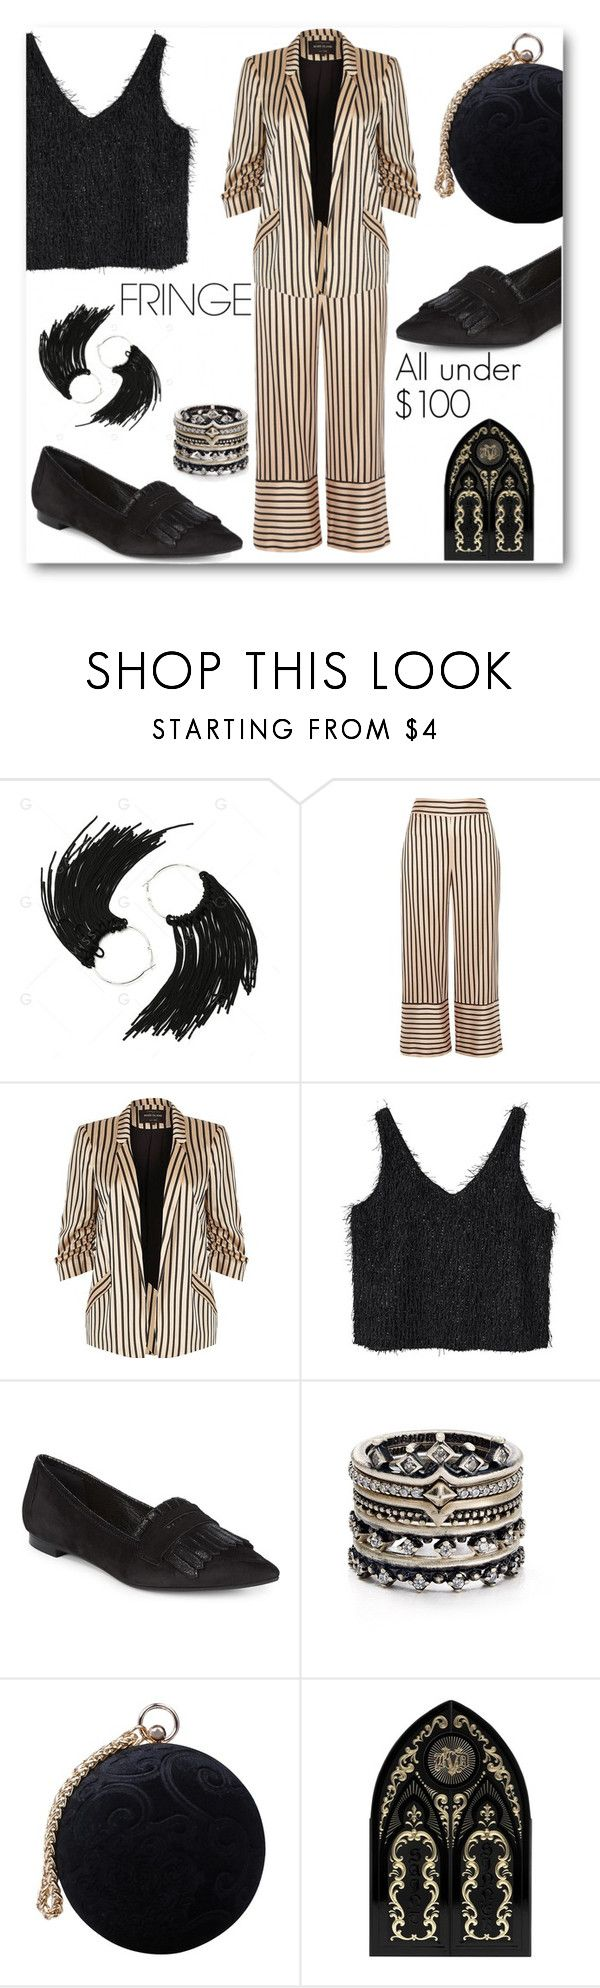 """""""Fringe Framework"""" by looking-for-a-place-to-happen ❤ liked on Polyvore featuring River Island, MANGO, Saks Fifth Avenue, Kendra Scott, Carvela and Kat Von D"""